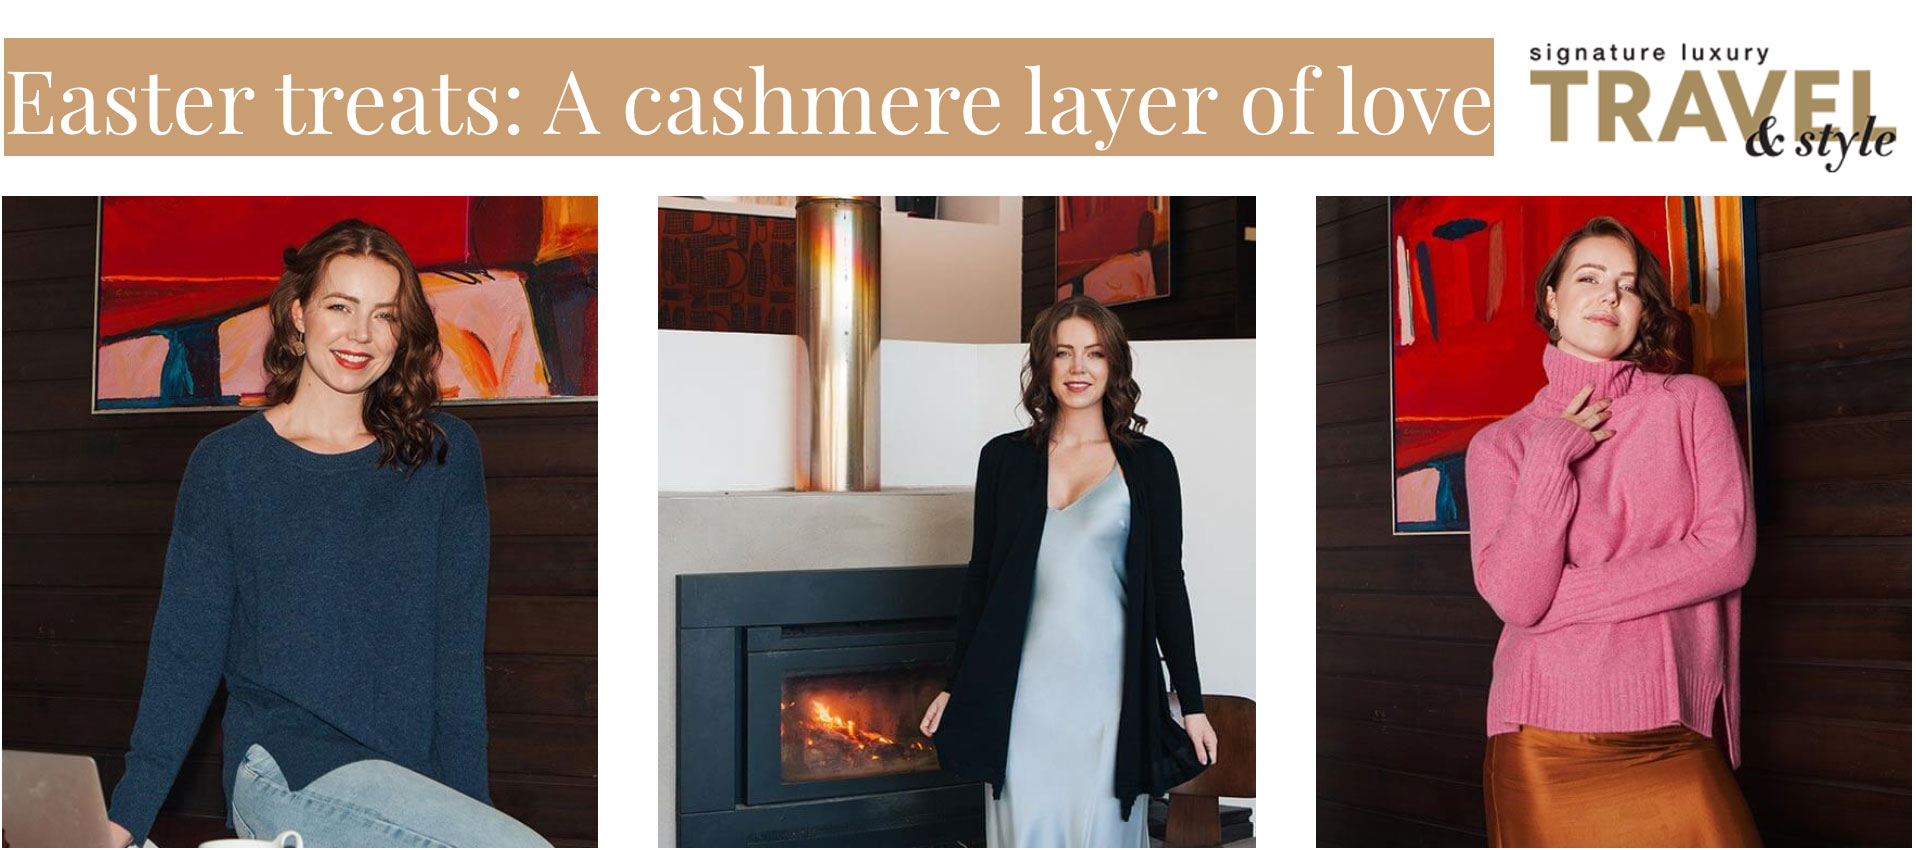 Signature Luxury Travel & Style -Easter treats: A cashmere layer of love